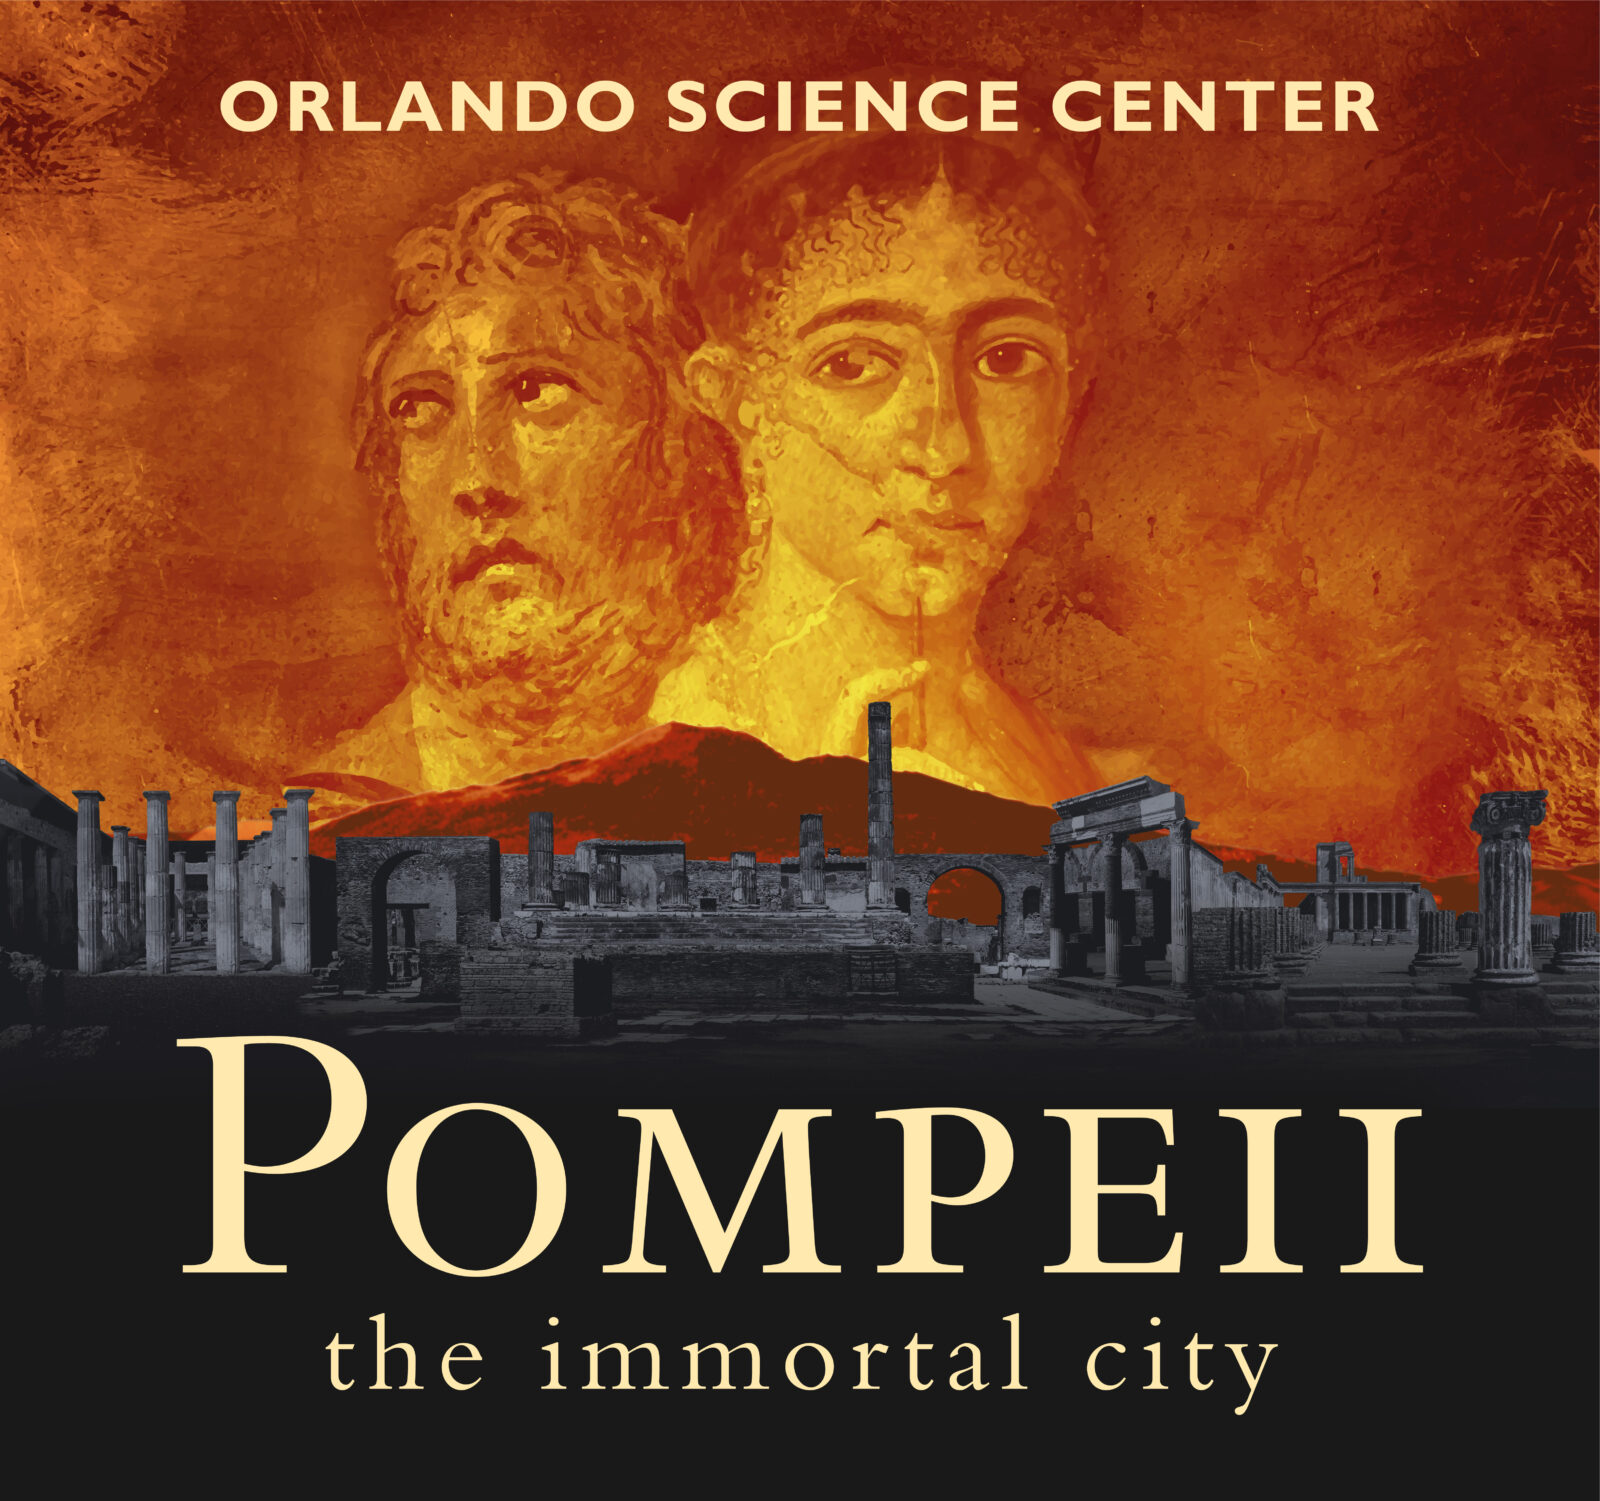 Orlando Science Center Pompeii Exhibit Update